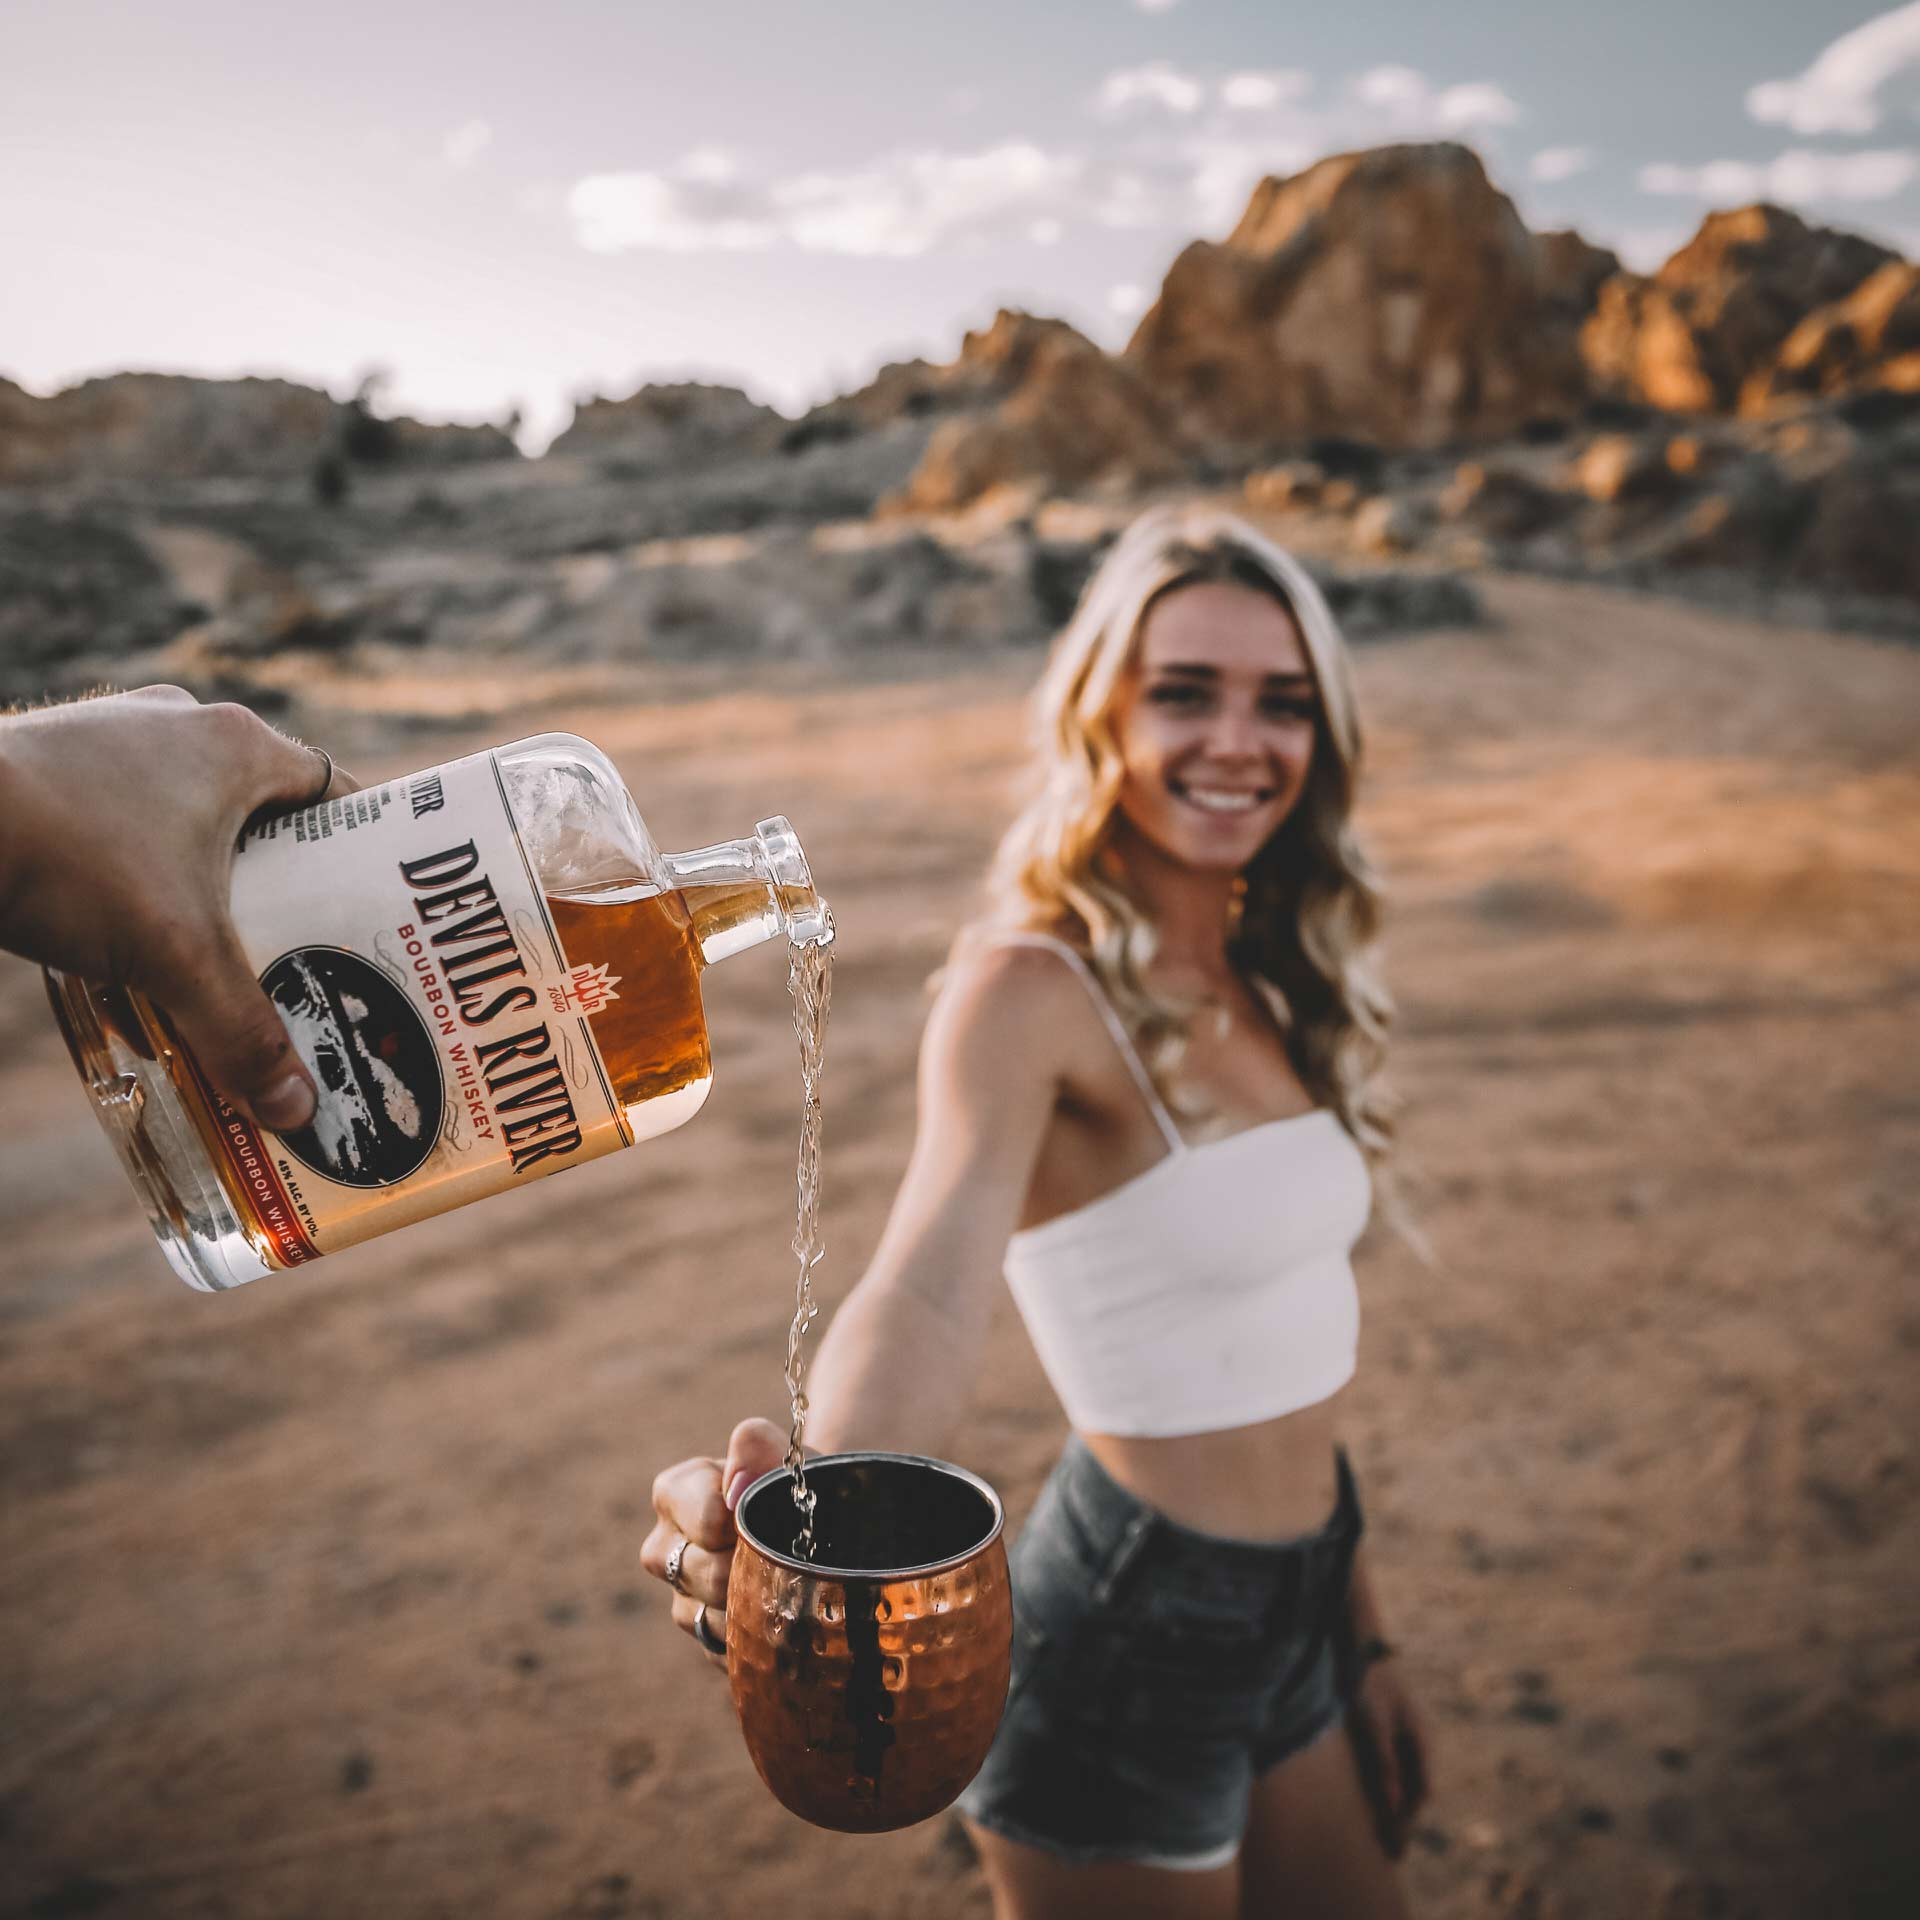 influencer marketing for devils river whiskey